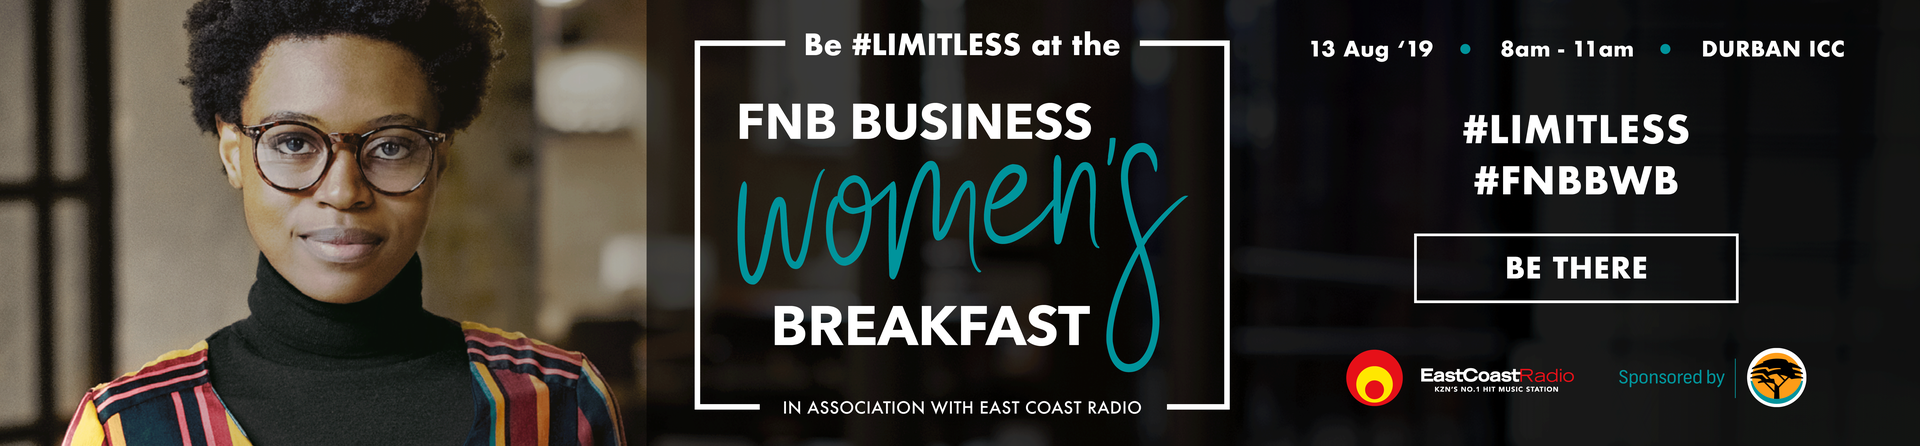 FNB Business Women's Breakfast in association with East Coast Radio Cover image